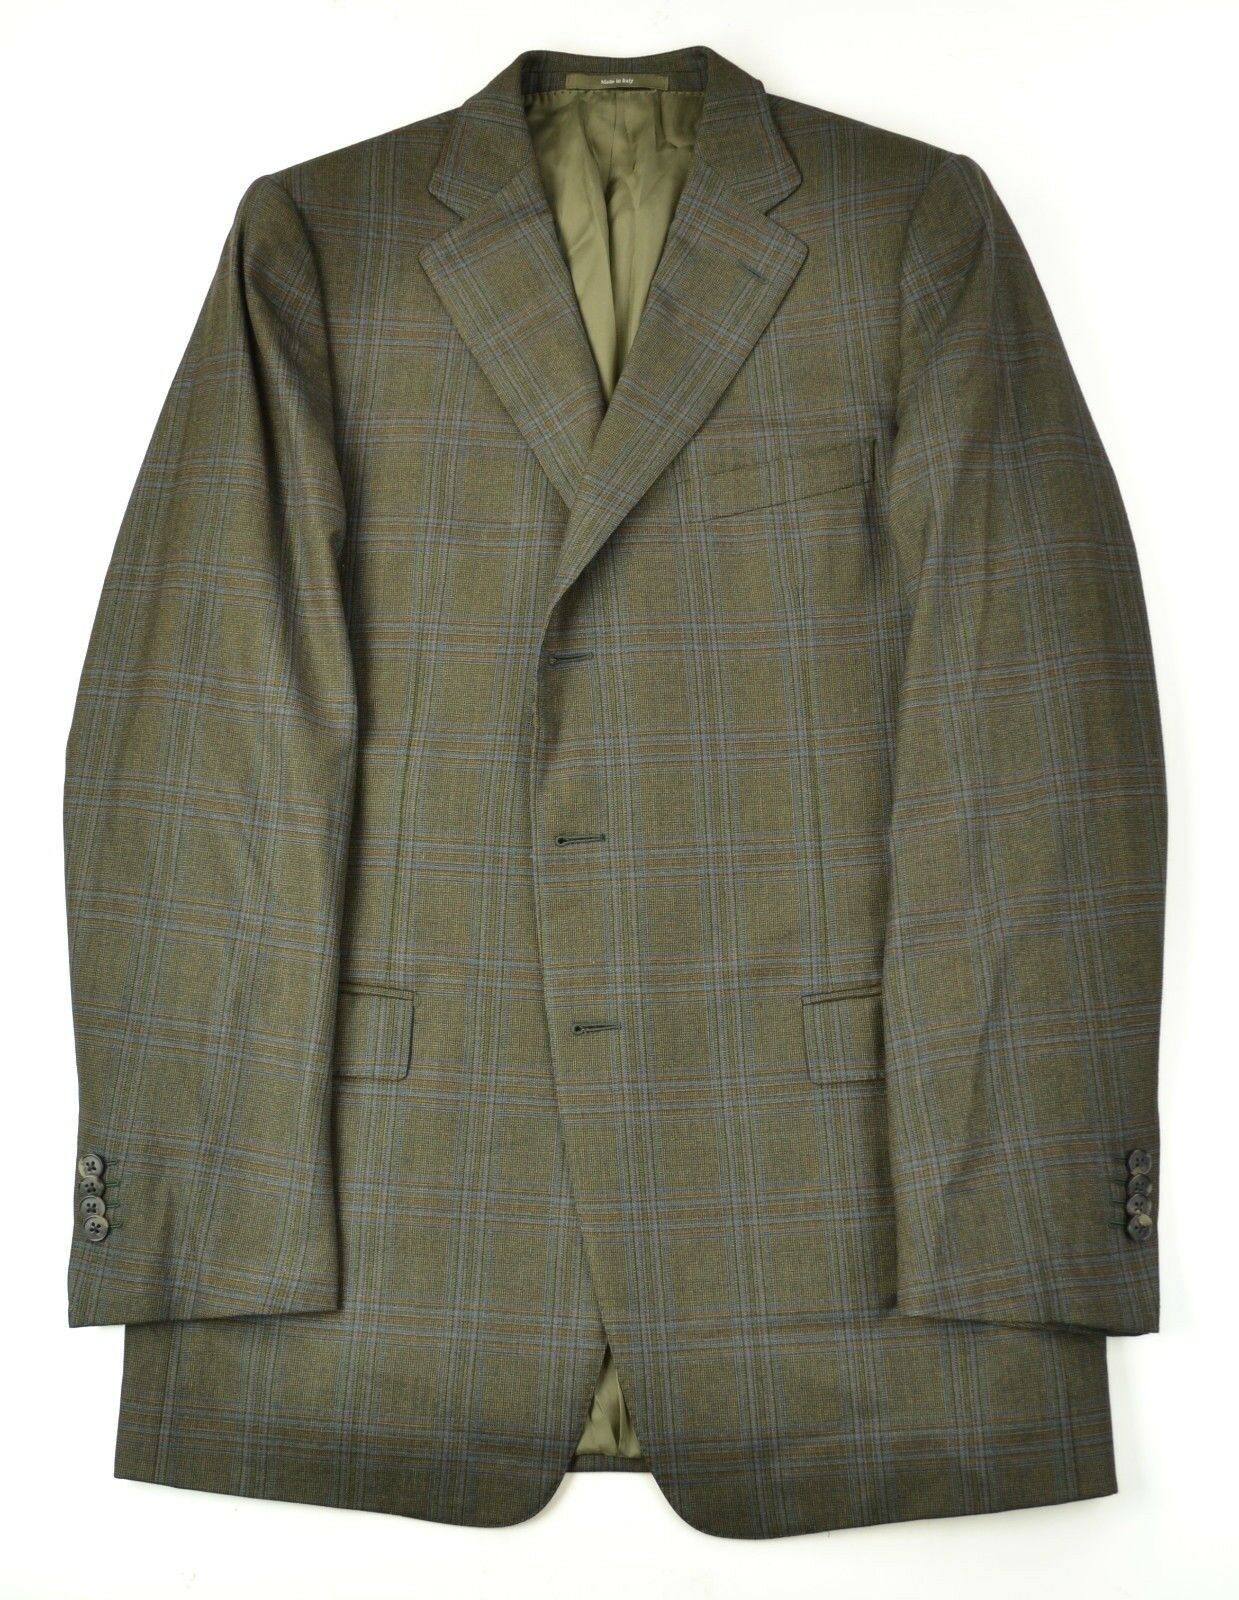 ERMENEILGO ZEGNA MOST RECENT LABEL TROFEO Roma Fit Brown Plaid Sportcoat 42 XL